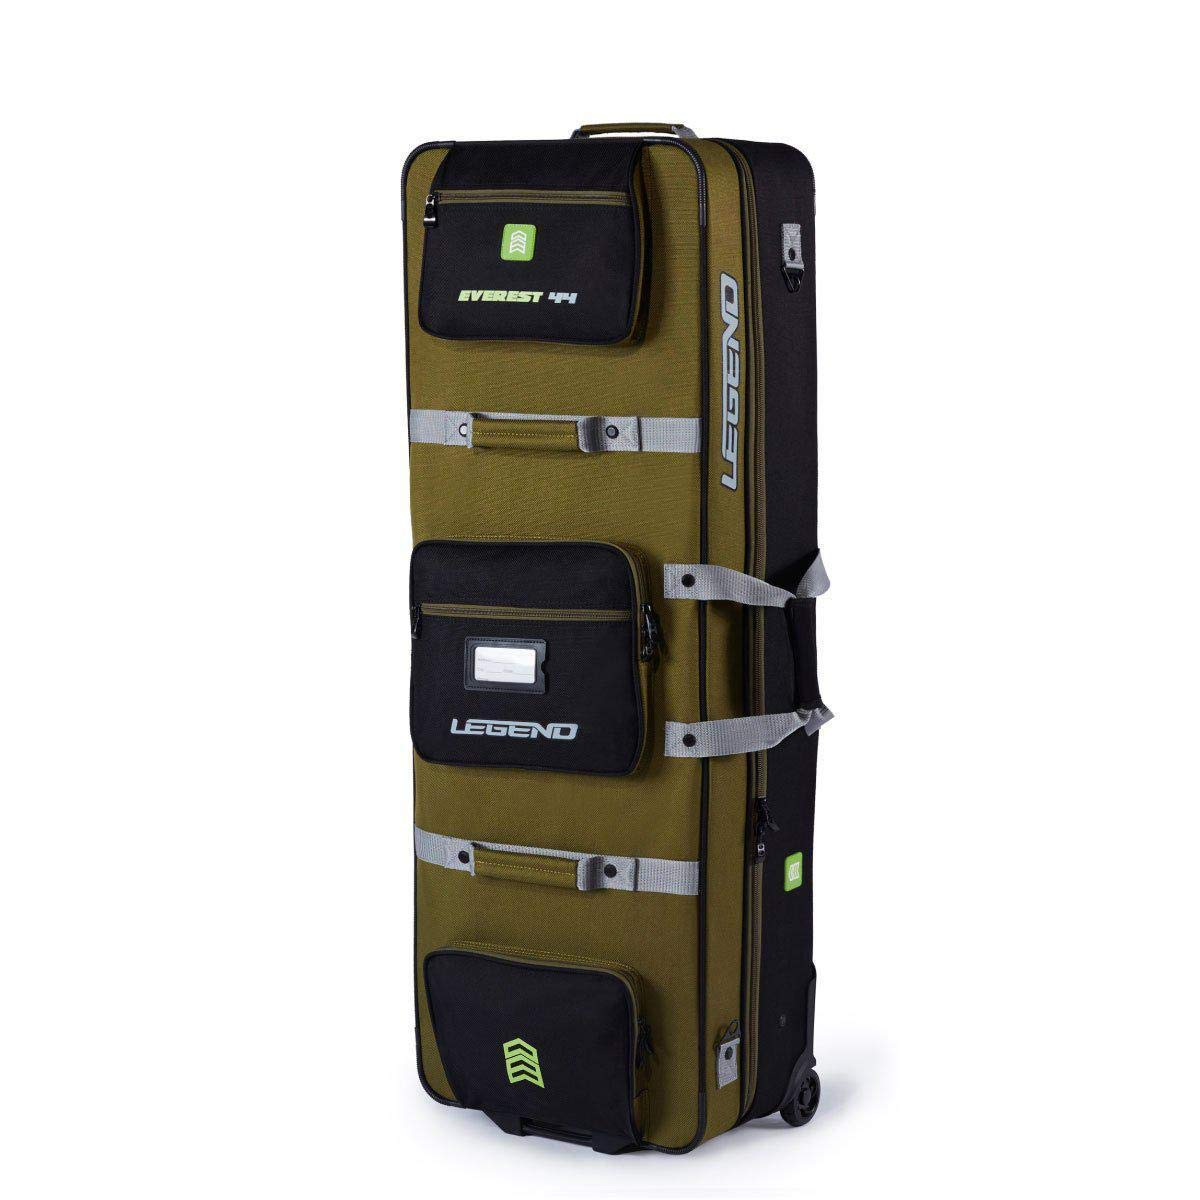 Legend Archery Hybrid Everest Roller Bow Cases Archery for Compound Bow Case - Strong Steel Metallic Structure - TSA & Airlines Approved - Sturdy Wheels & Lightweight (Green/Size 40)